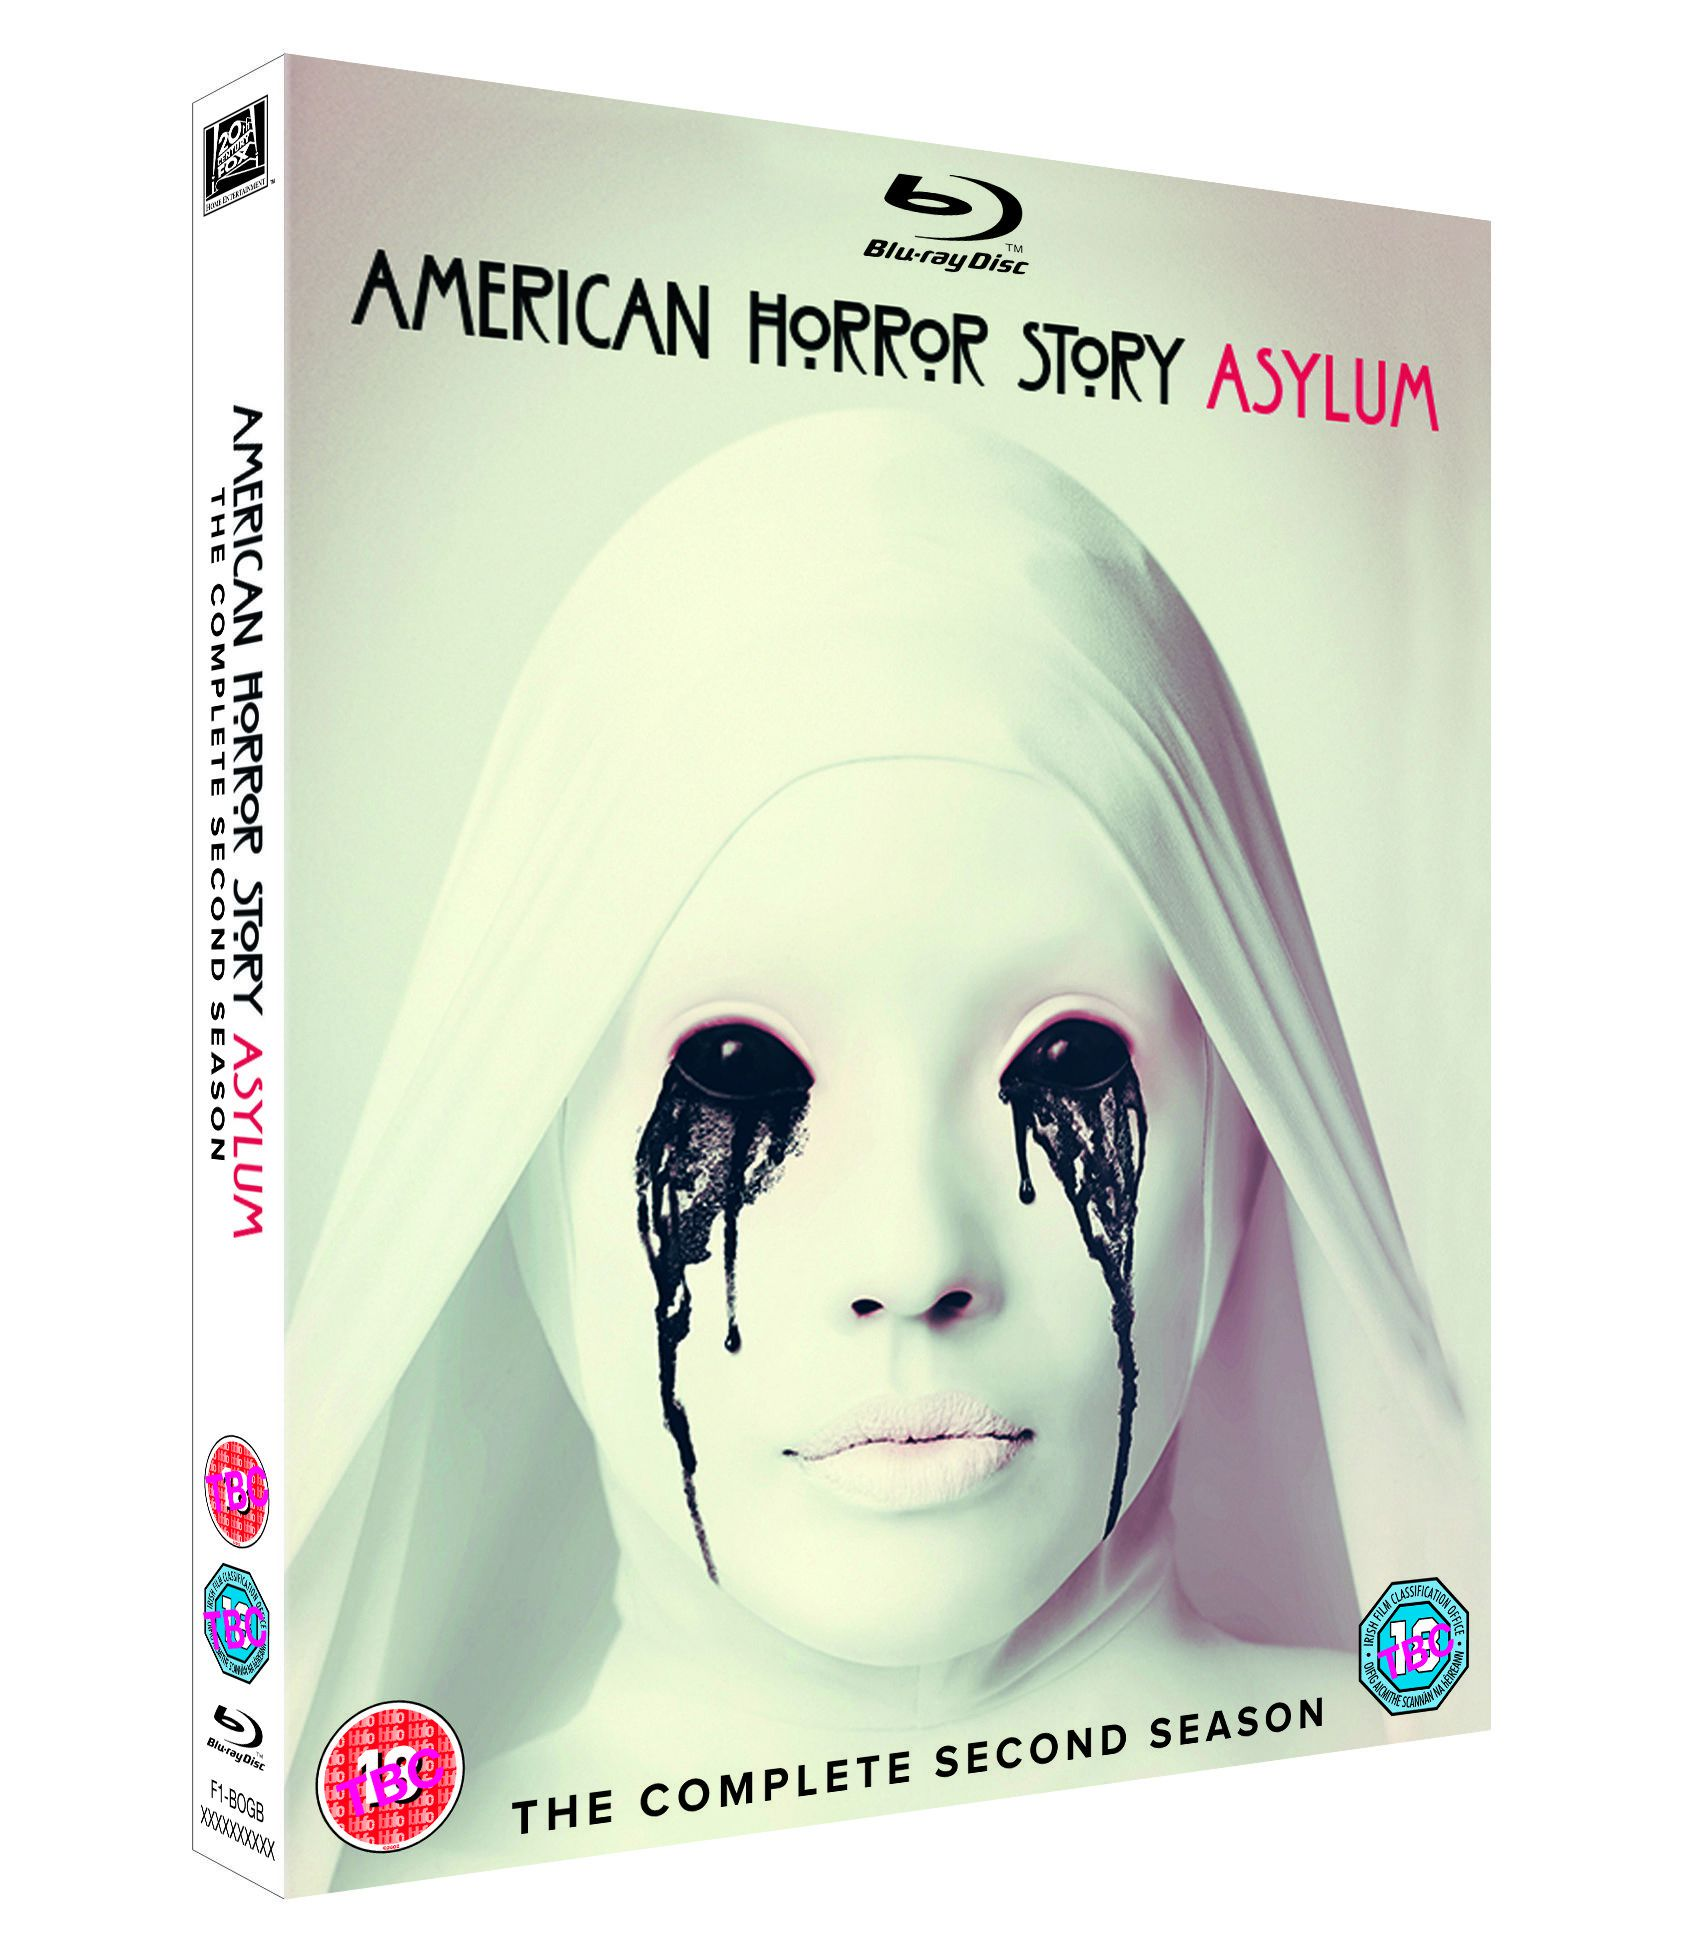 American Horror Story: Asylum - The Complete Second Season packshot